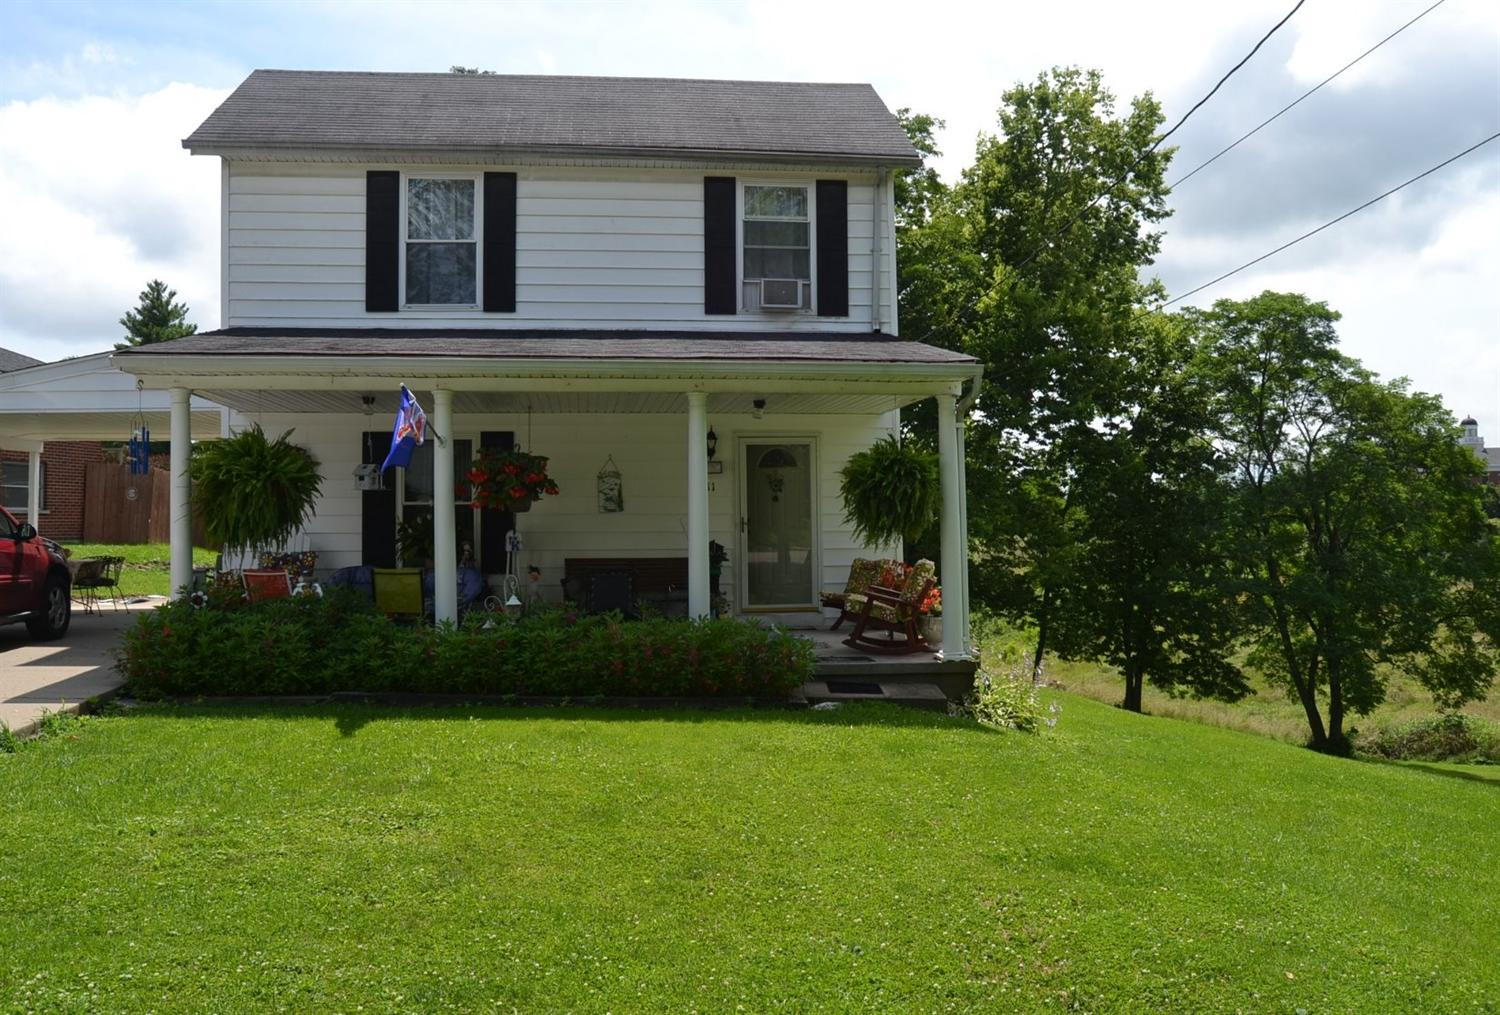 Photo 1 for 111 Cynthiana St Williamstown, KY 41097